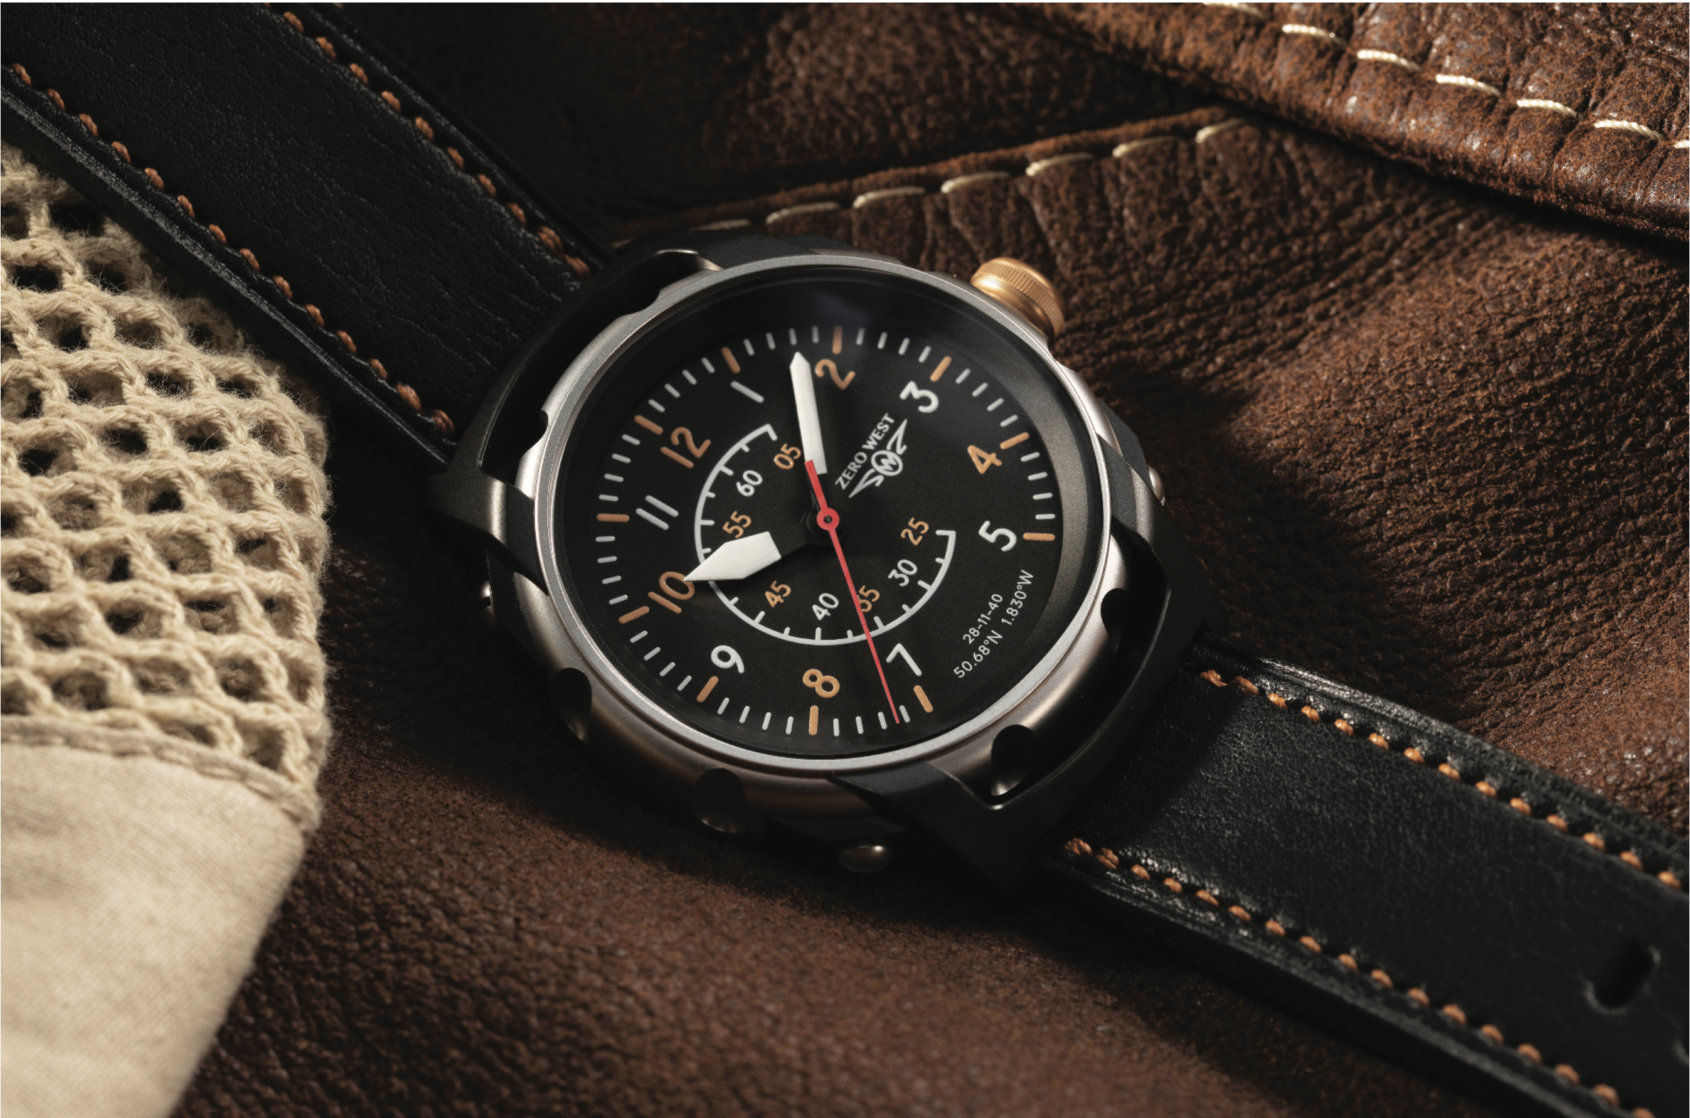 MICRO MONDAYS: The Zero West Spitfire S4-P9427 celebrates the 80th Anniversary of the Battle of Britain with 80 watches